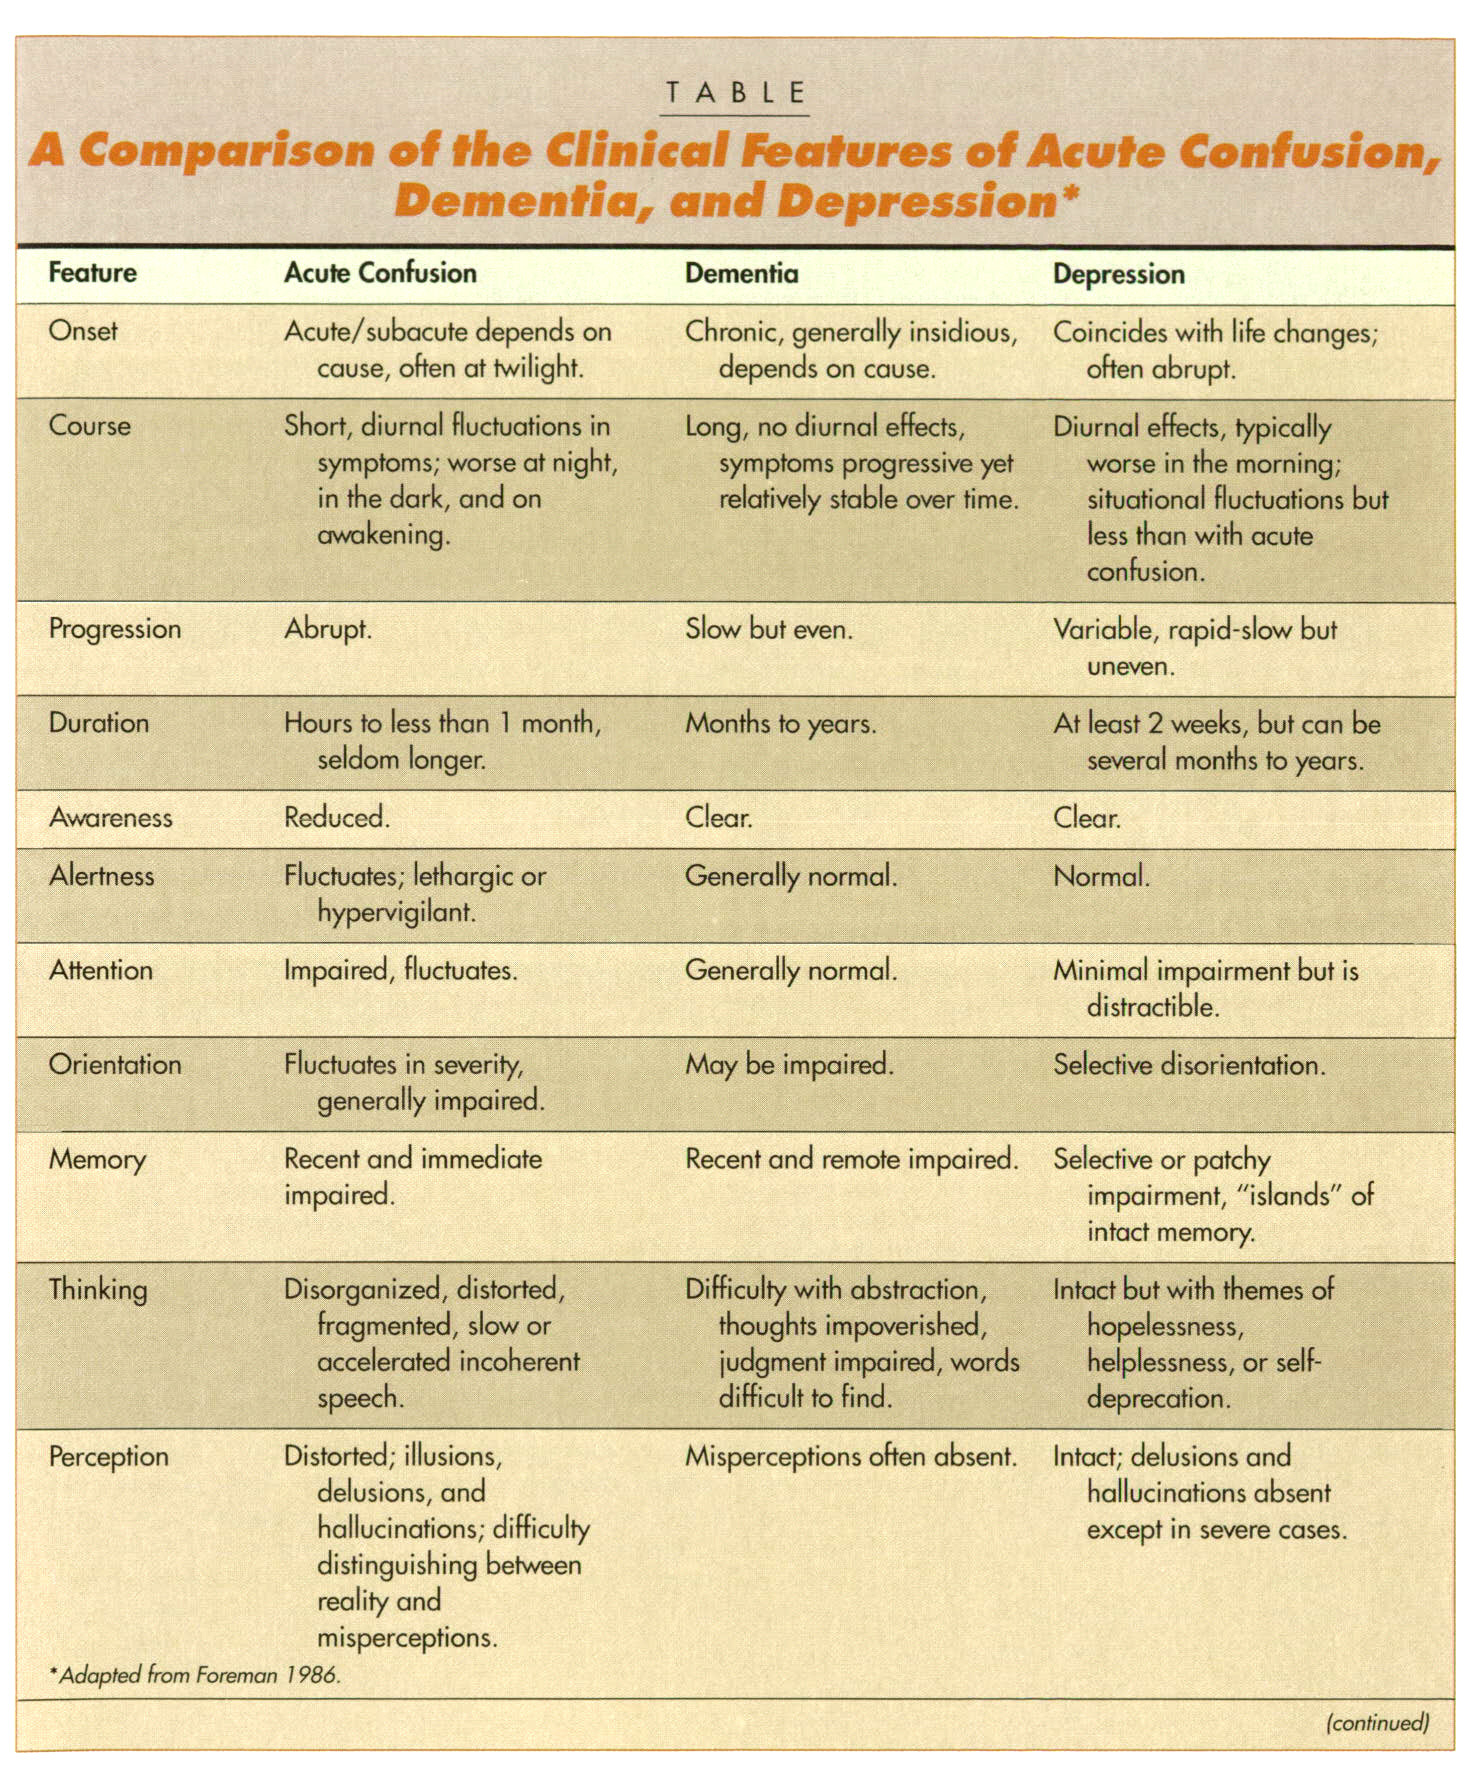 TABLEA Comparison of the Clinical features of Acute Confusion, Dementia, and Depression*